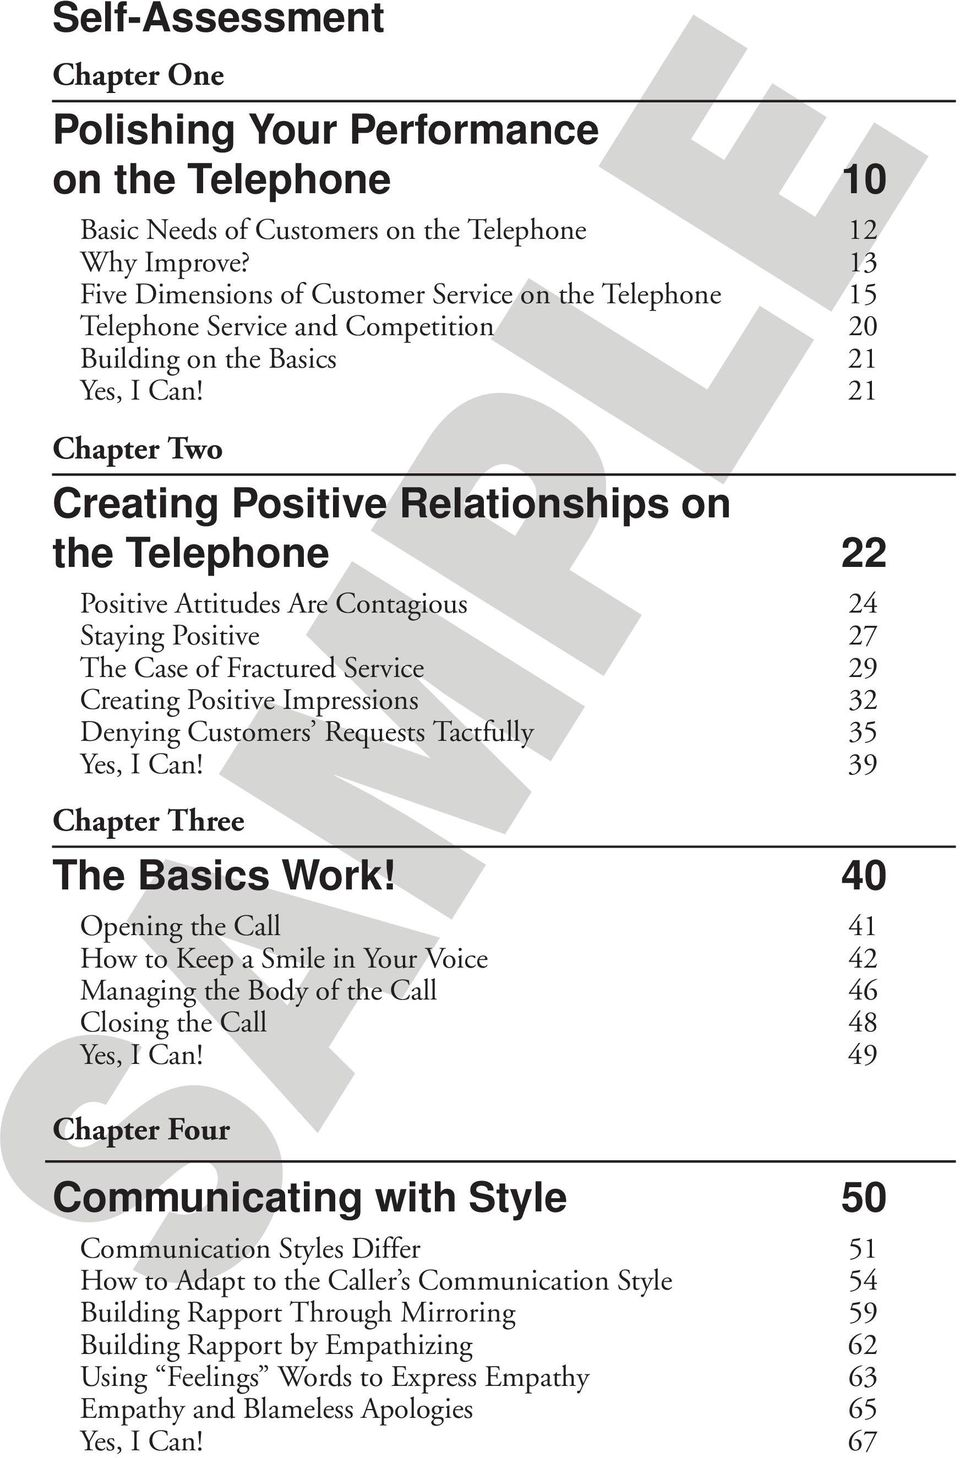 21 Chapter Two Creating Positive Relationships on the Telephone 22 Positive Attitudes Are Contagious 24 Staying Positive 27 The Case of Fractured Service 29 Creating Positive Impressions 32 Denying